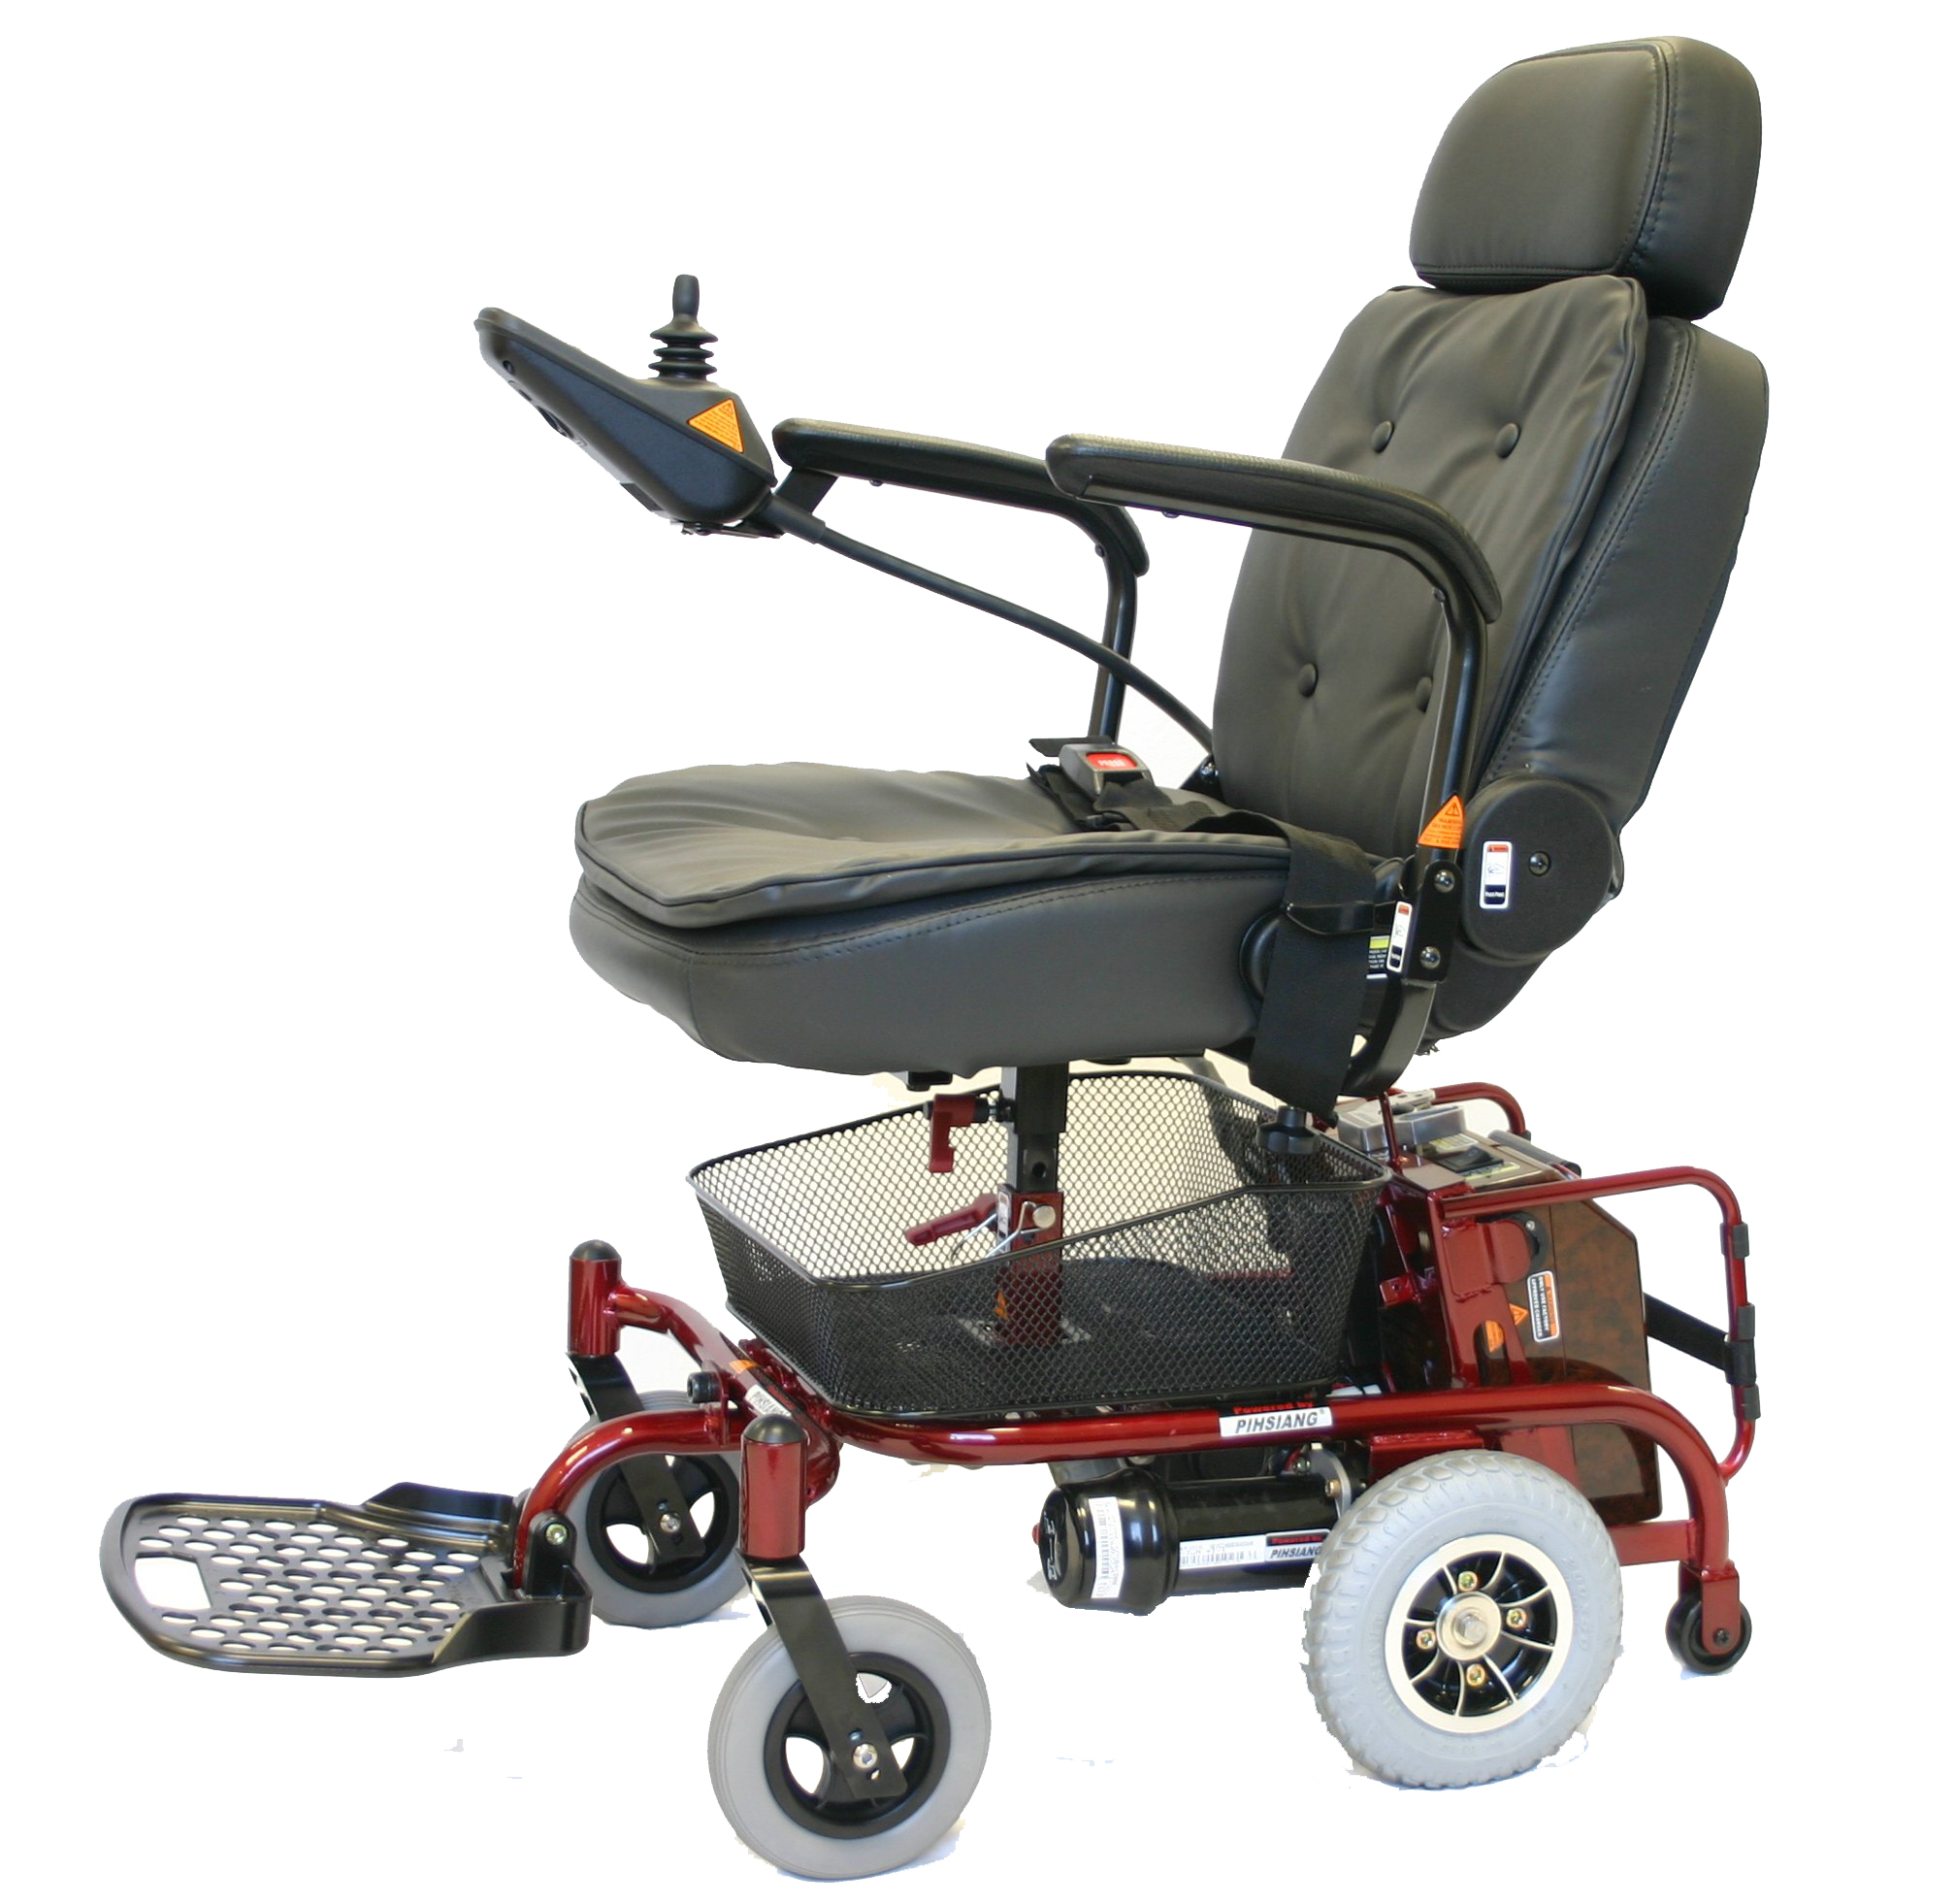 Electric Wheel Chairs Shoprider Xtralite Jiffy Electric Wheelchair